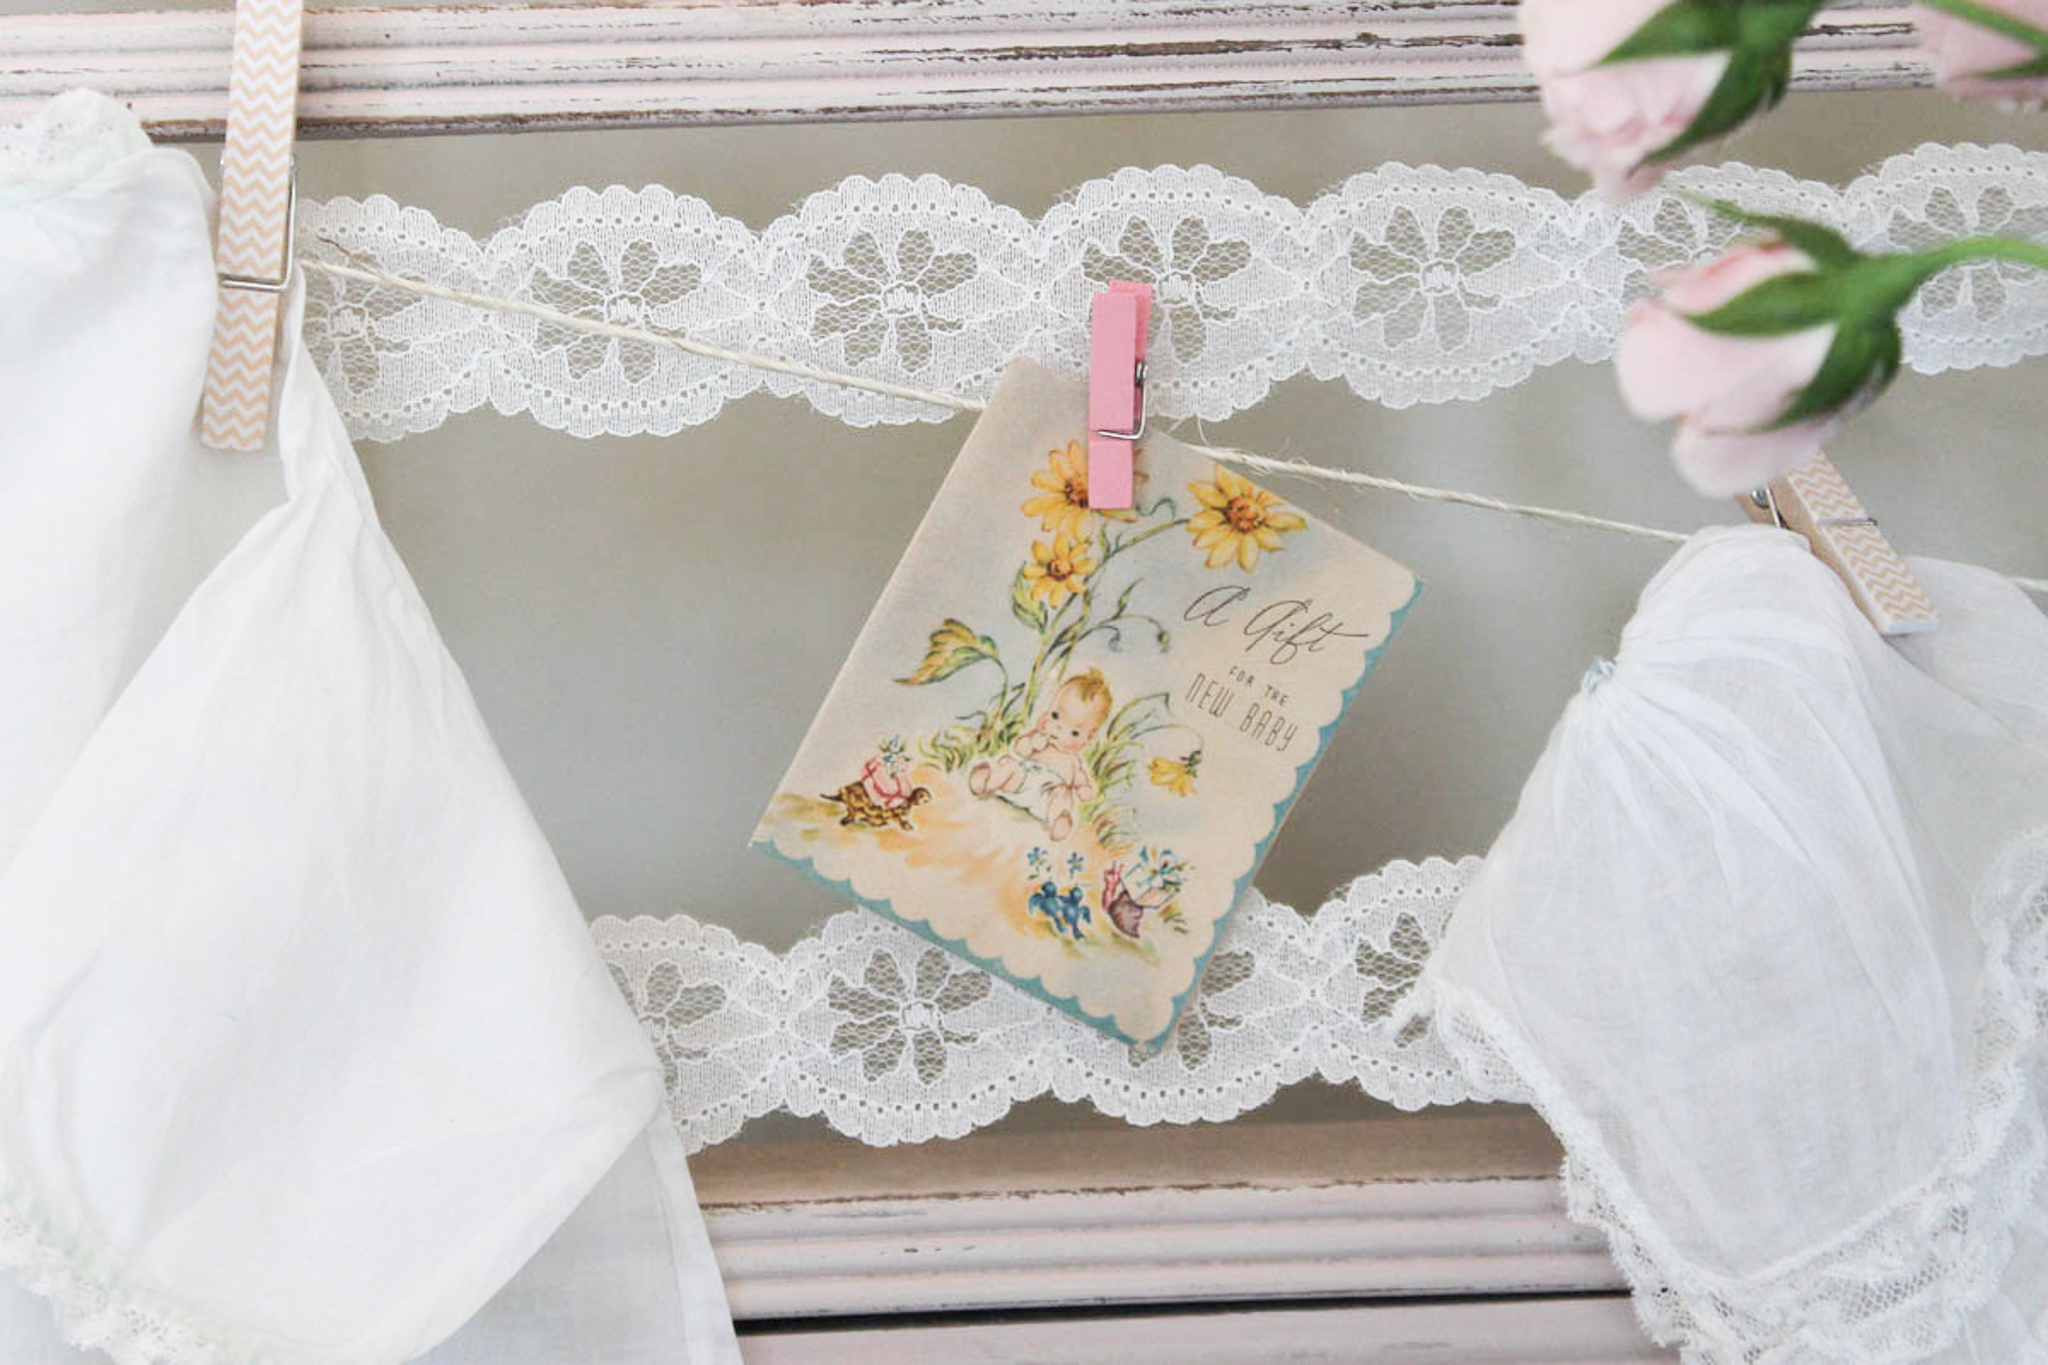 Southern Vintage Baby Shower-gift table backdrop card.jpg